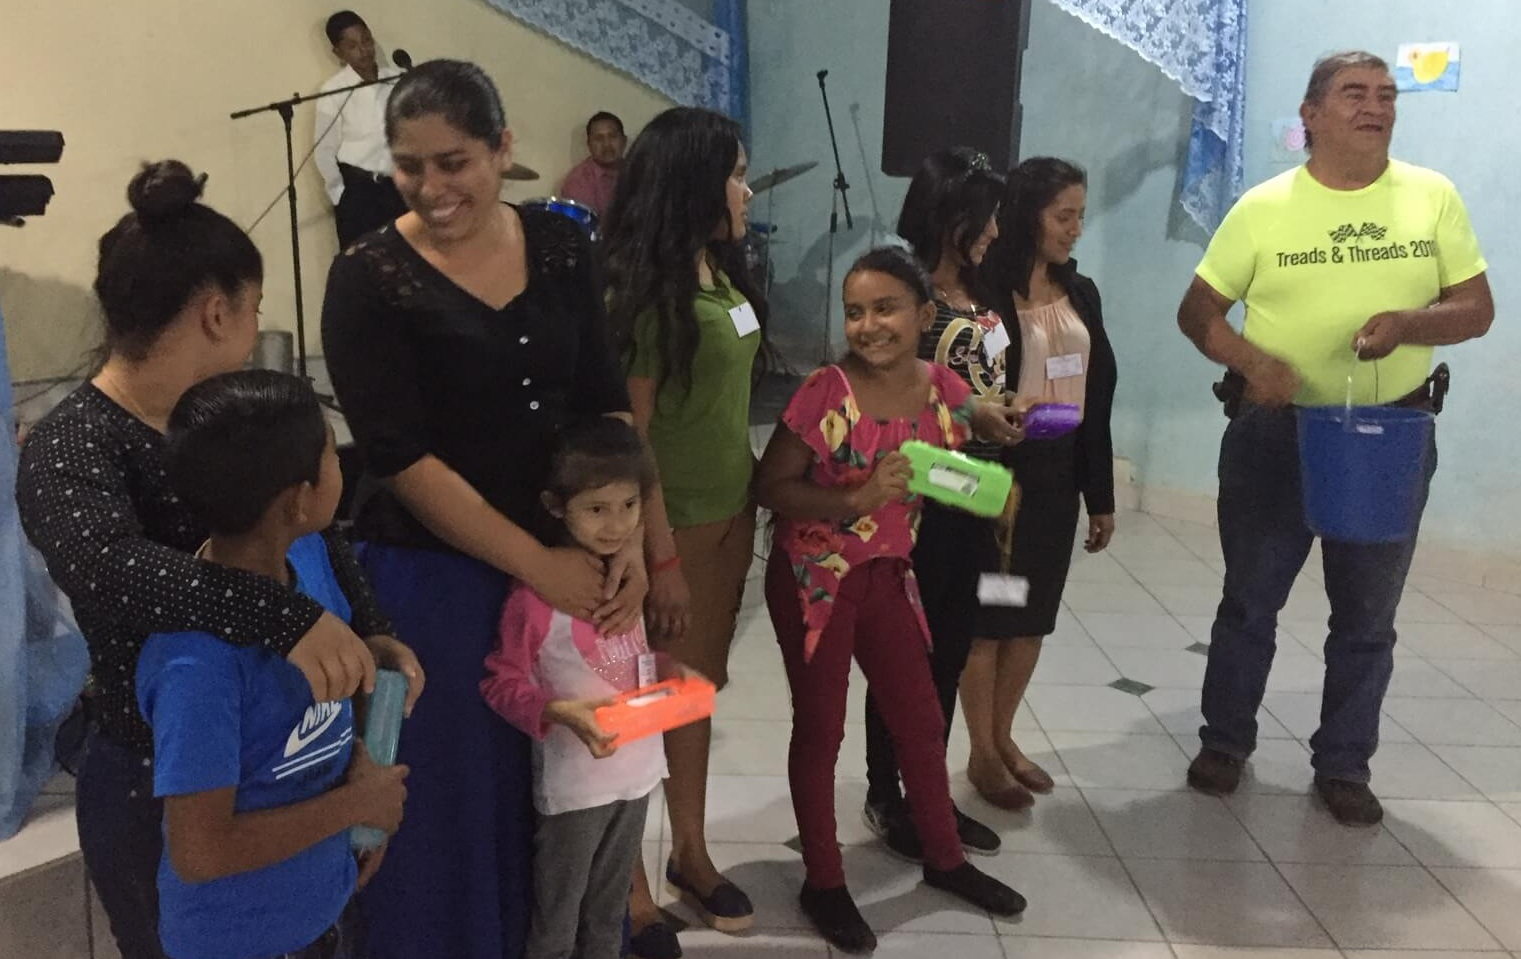 In a children's event at a church near Cesar's home in Amberes, these teachers enjoy a moment when Cesar gives prizes for various children who participated in the story time.